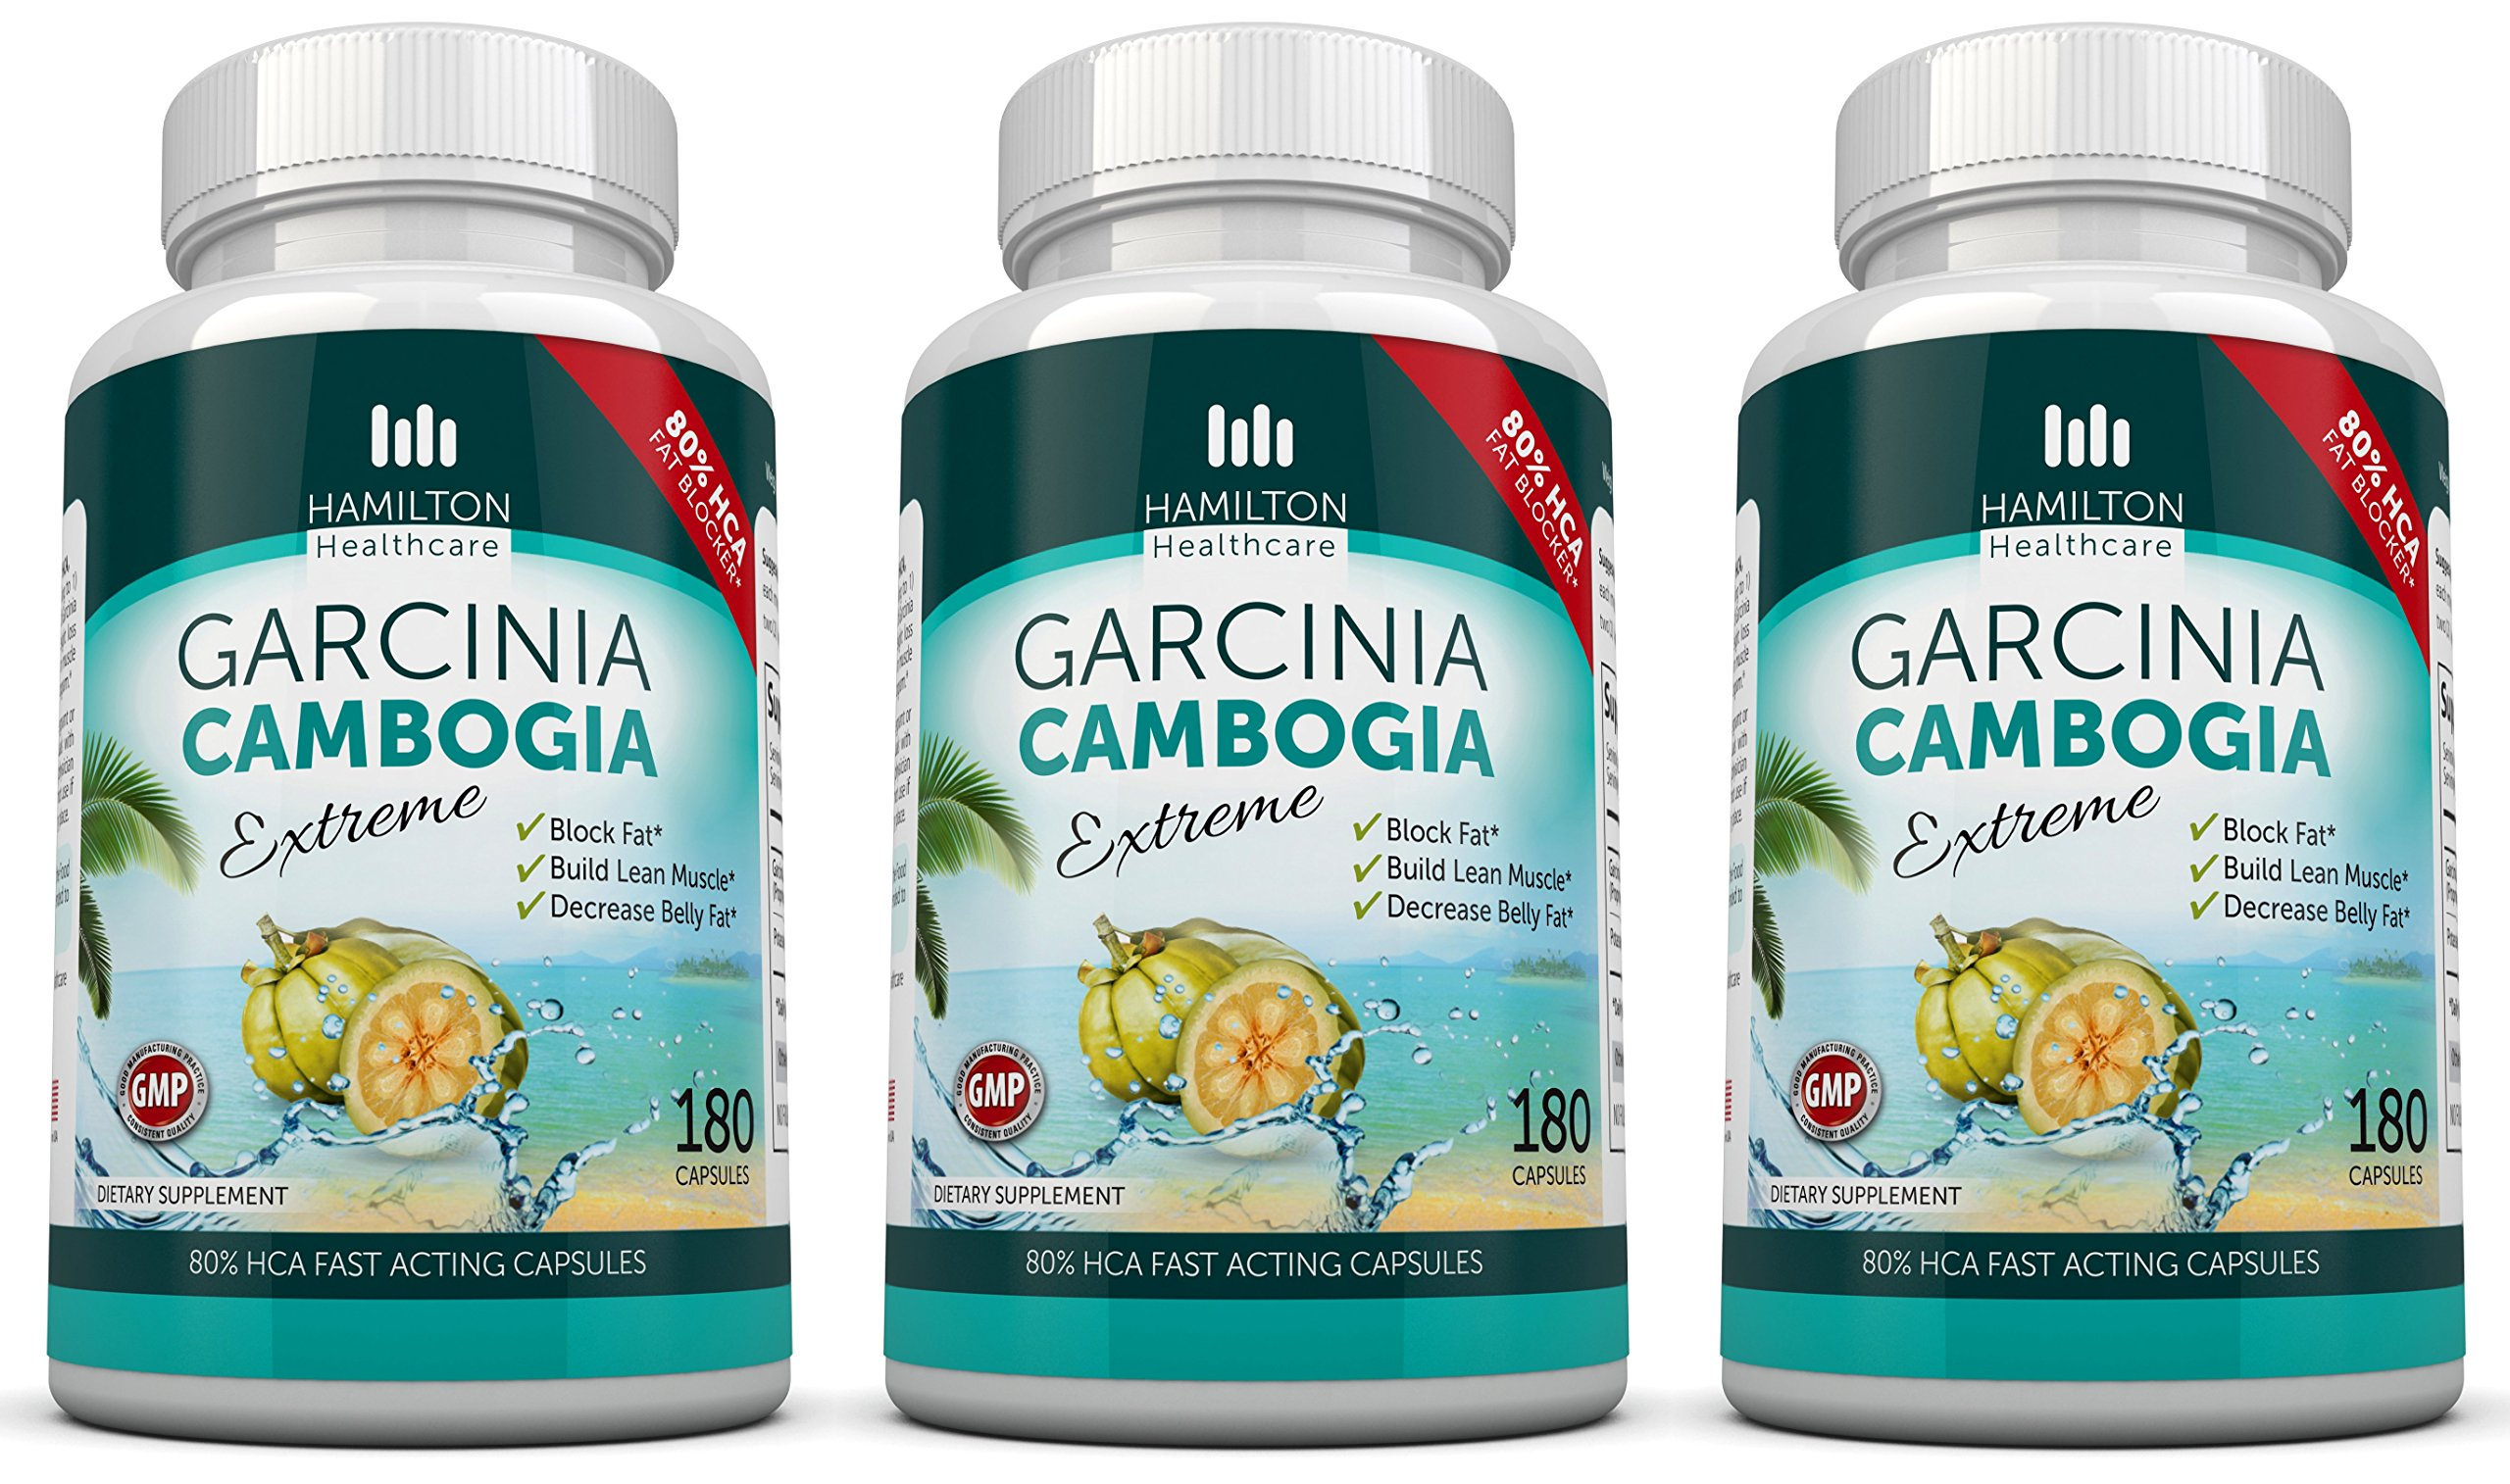 80% HCA Super Strength Garcinia Cambogia Extreme 3 X 180 Fast Acting Capsules. All Natural Appetite Suppressant and Weight Loss Supplement By Hamilton Healthcare